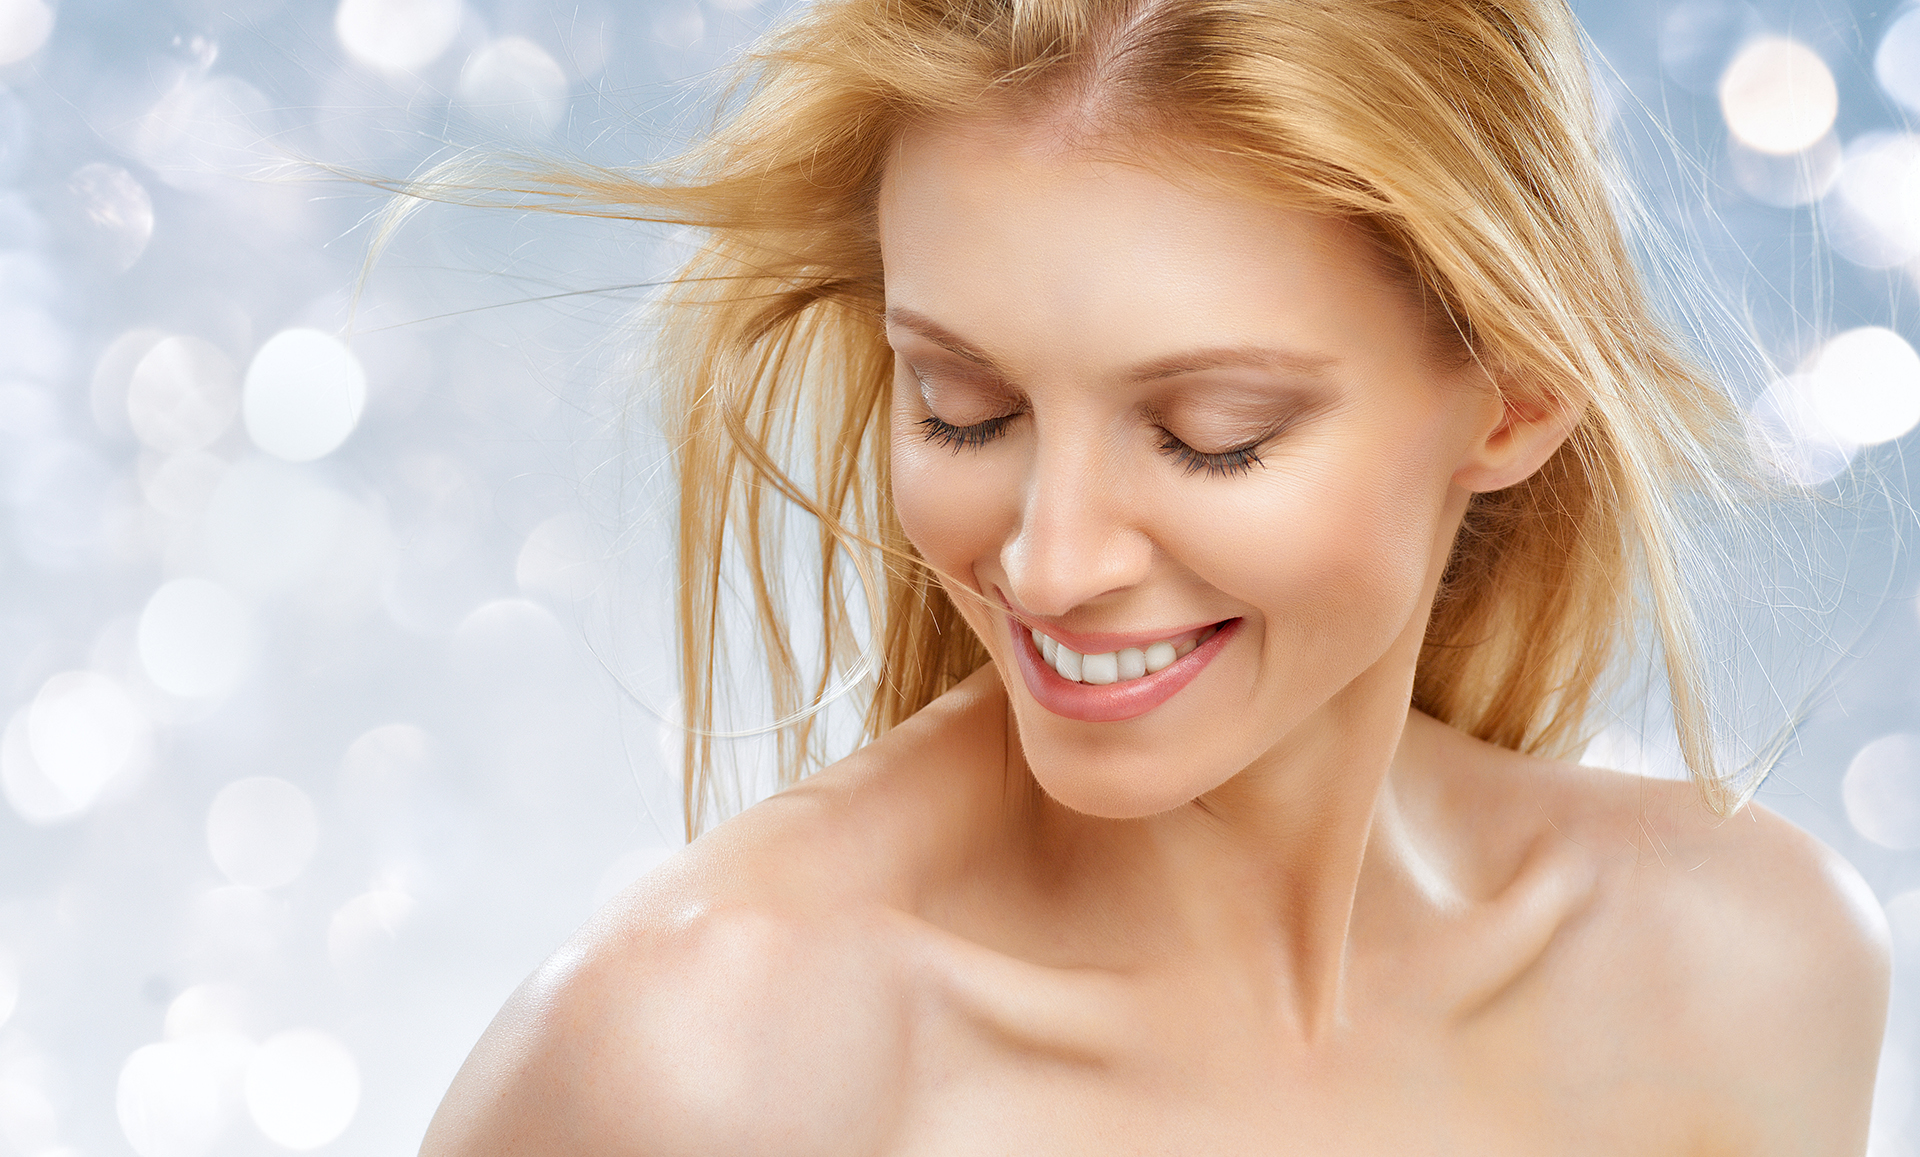 Chemical Peel vs. Laser Peel – Which One is Right For You?